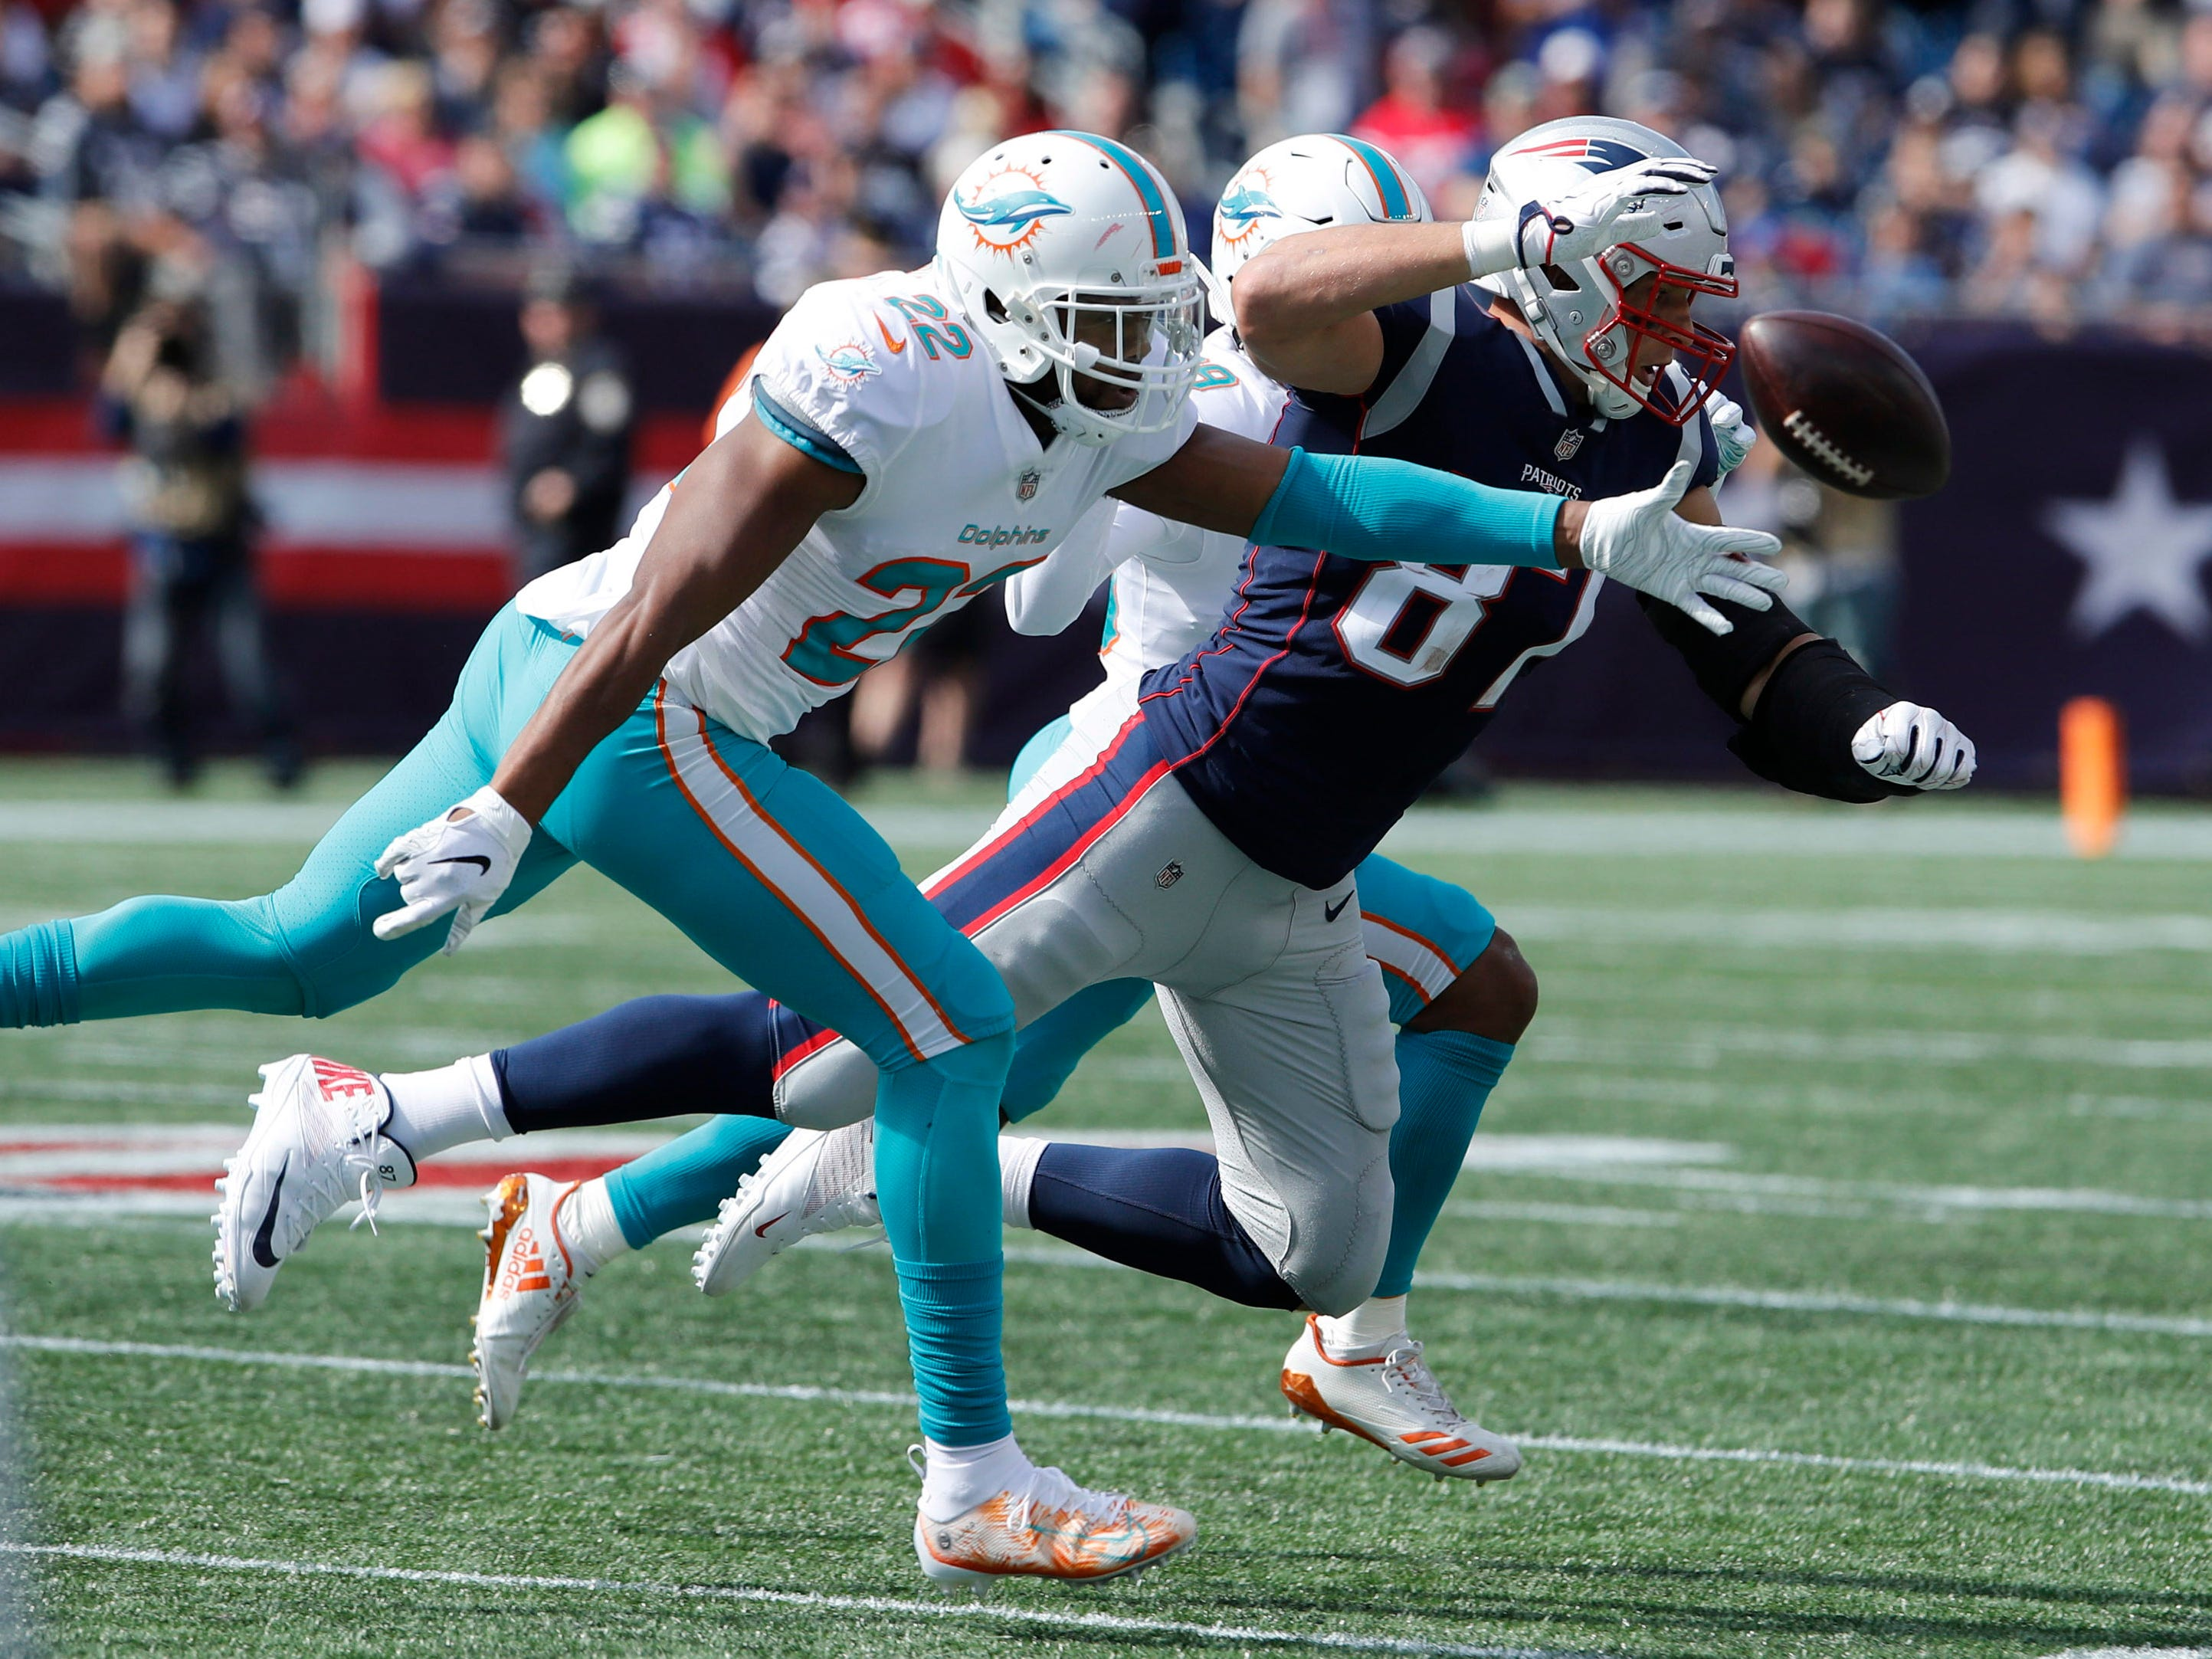 Patriots tight end Rob Gronkowski (87) under pressure from the Dolphins in the first half at Gillette Stadium.